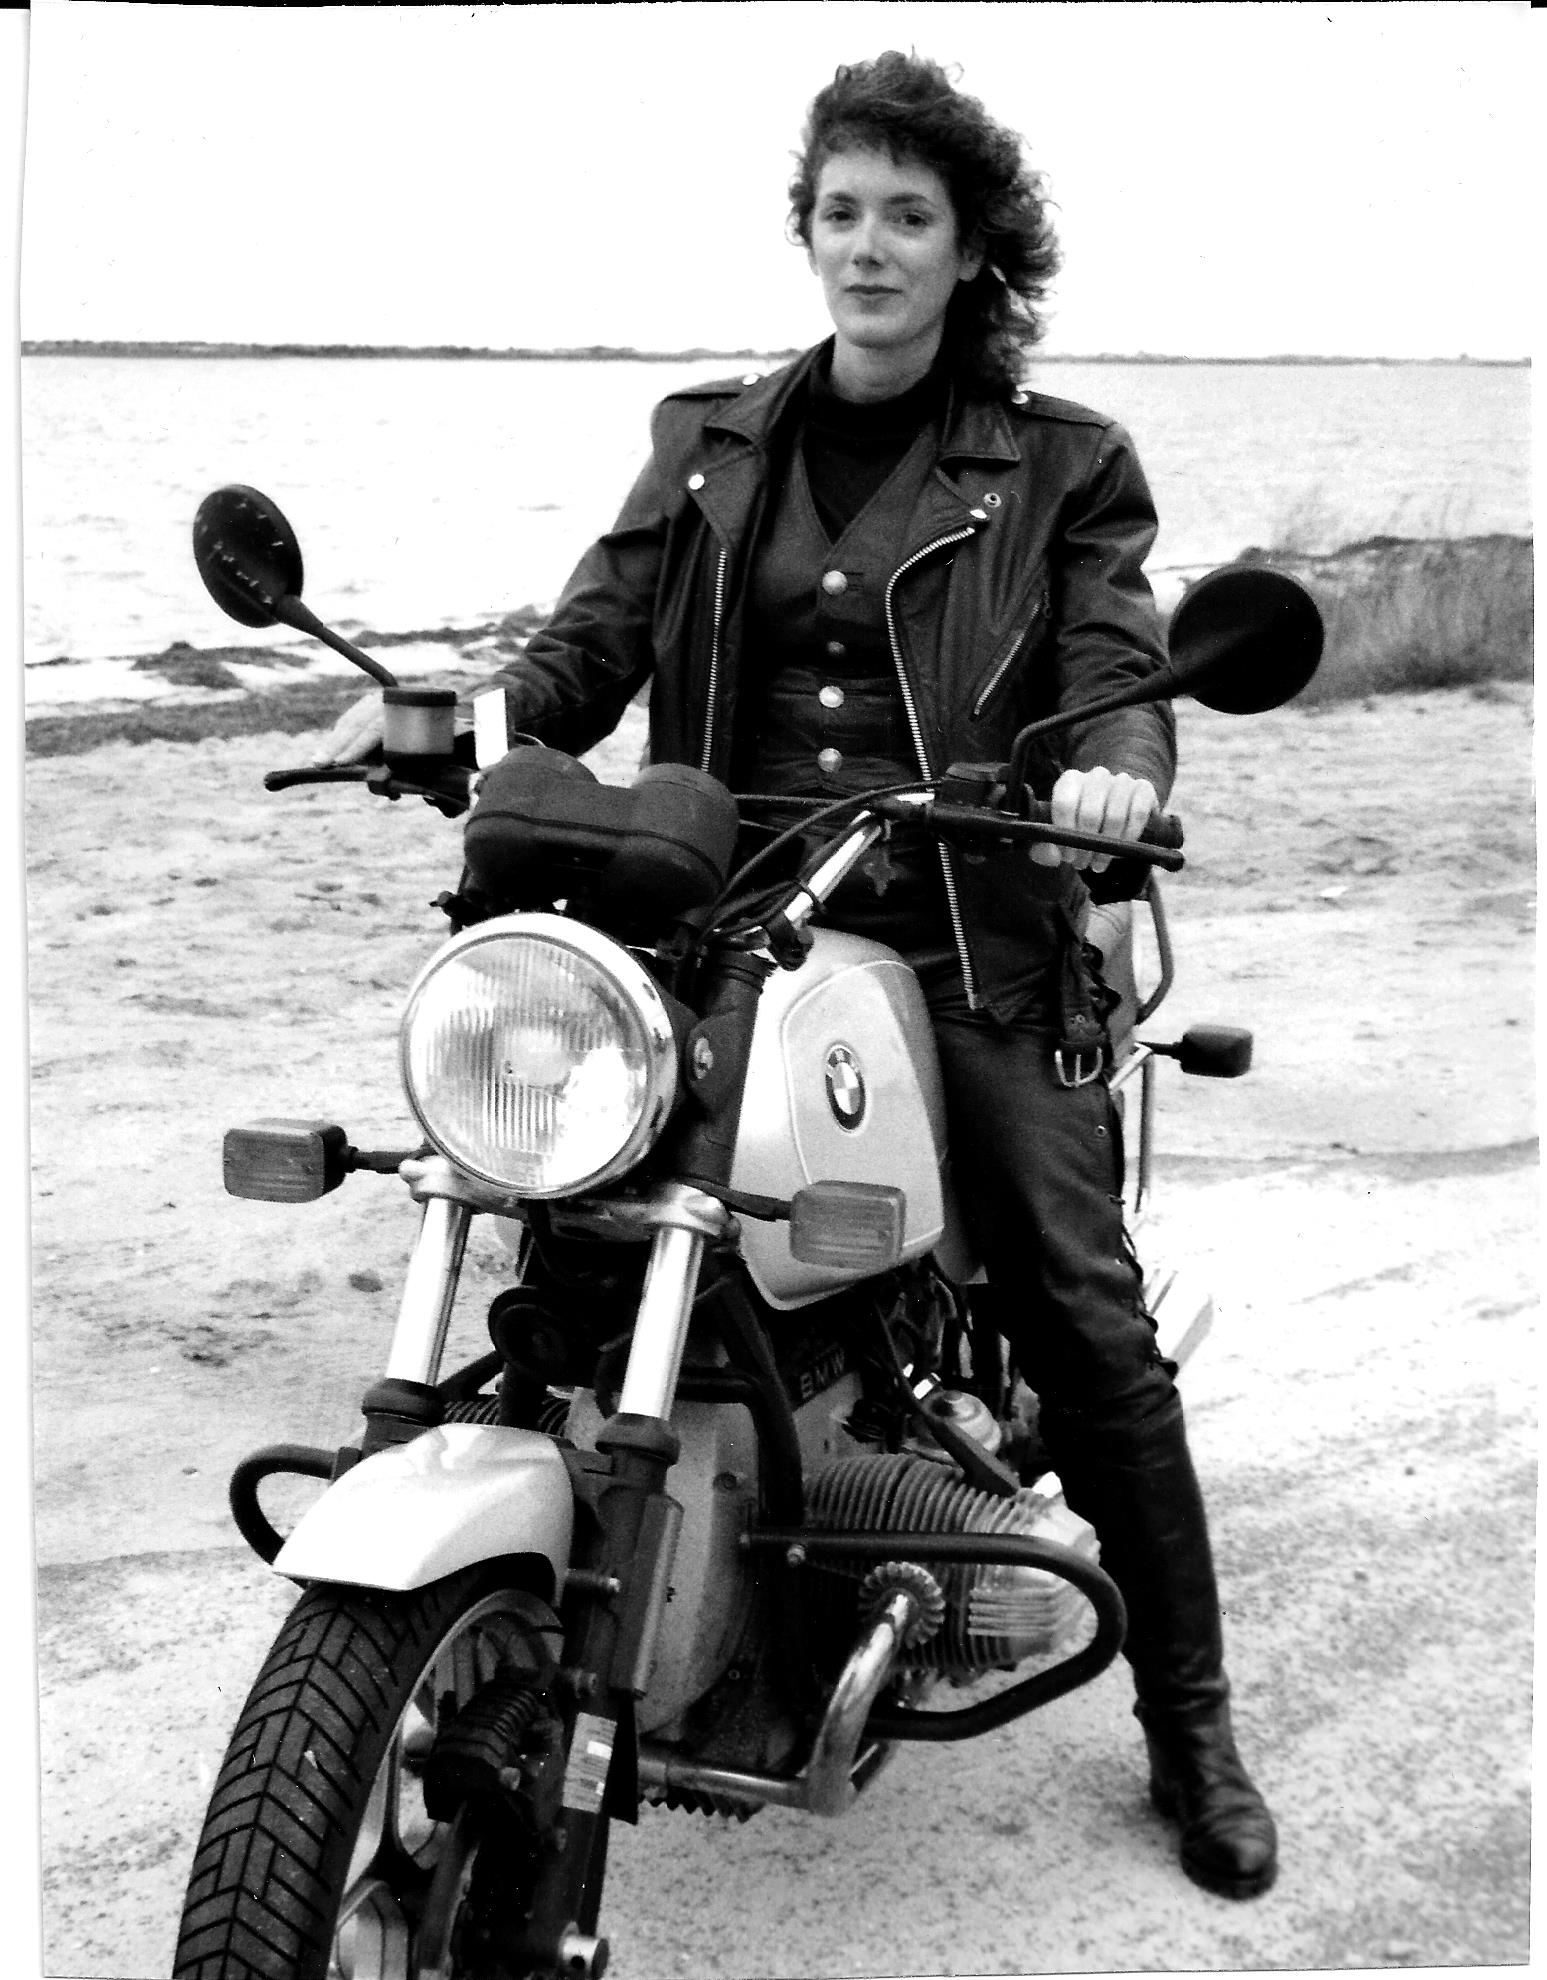 Ann on her vintage BMW-R65 upon release of <em>Hear Me Roar</em>, spring 1996